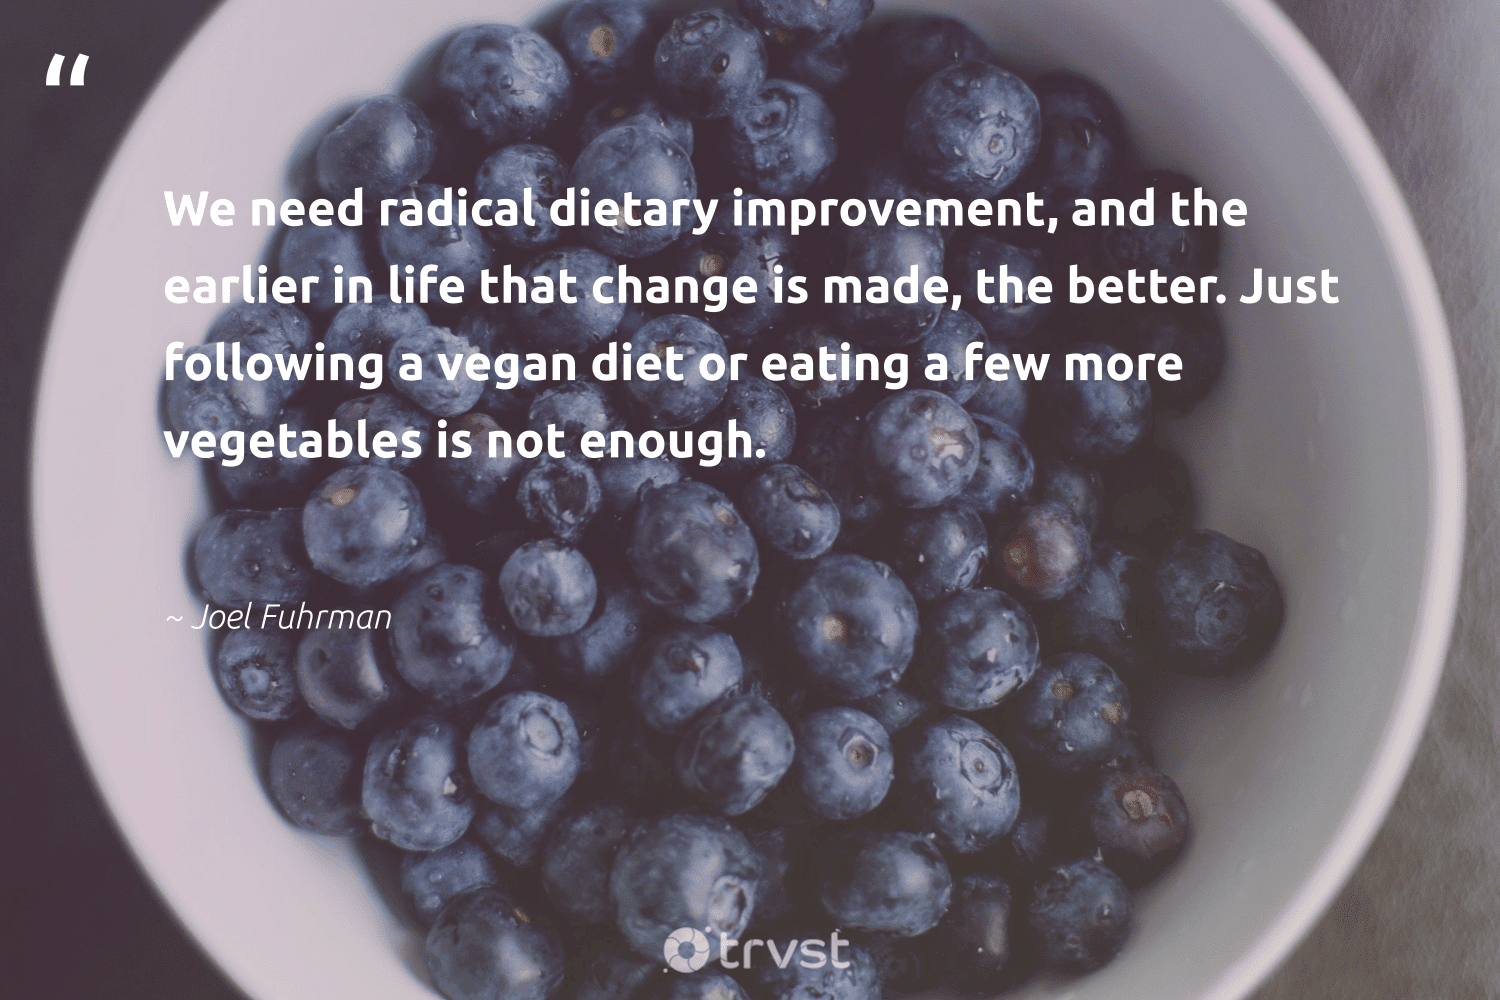 """We need radical dietary improvement, and the earlier in life that change is made, the better. Just following a vegan diet or eating a few more vegetables is not enough.""  - Joel Fuhrman #trvst #quotes #vegan #veganfood #fashion #greenliving #dosomething #vegetarian #green #sustainability #socialchange #plantbased"